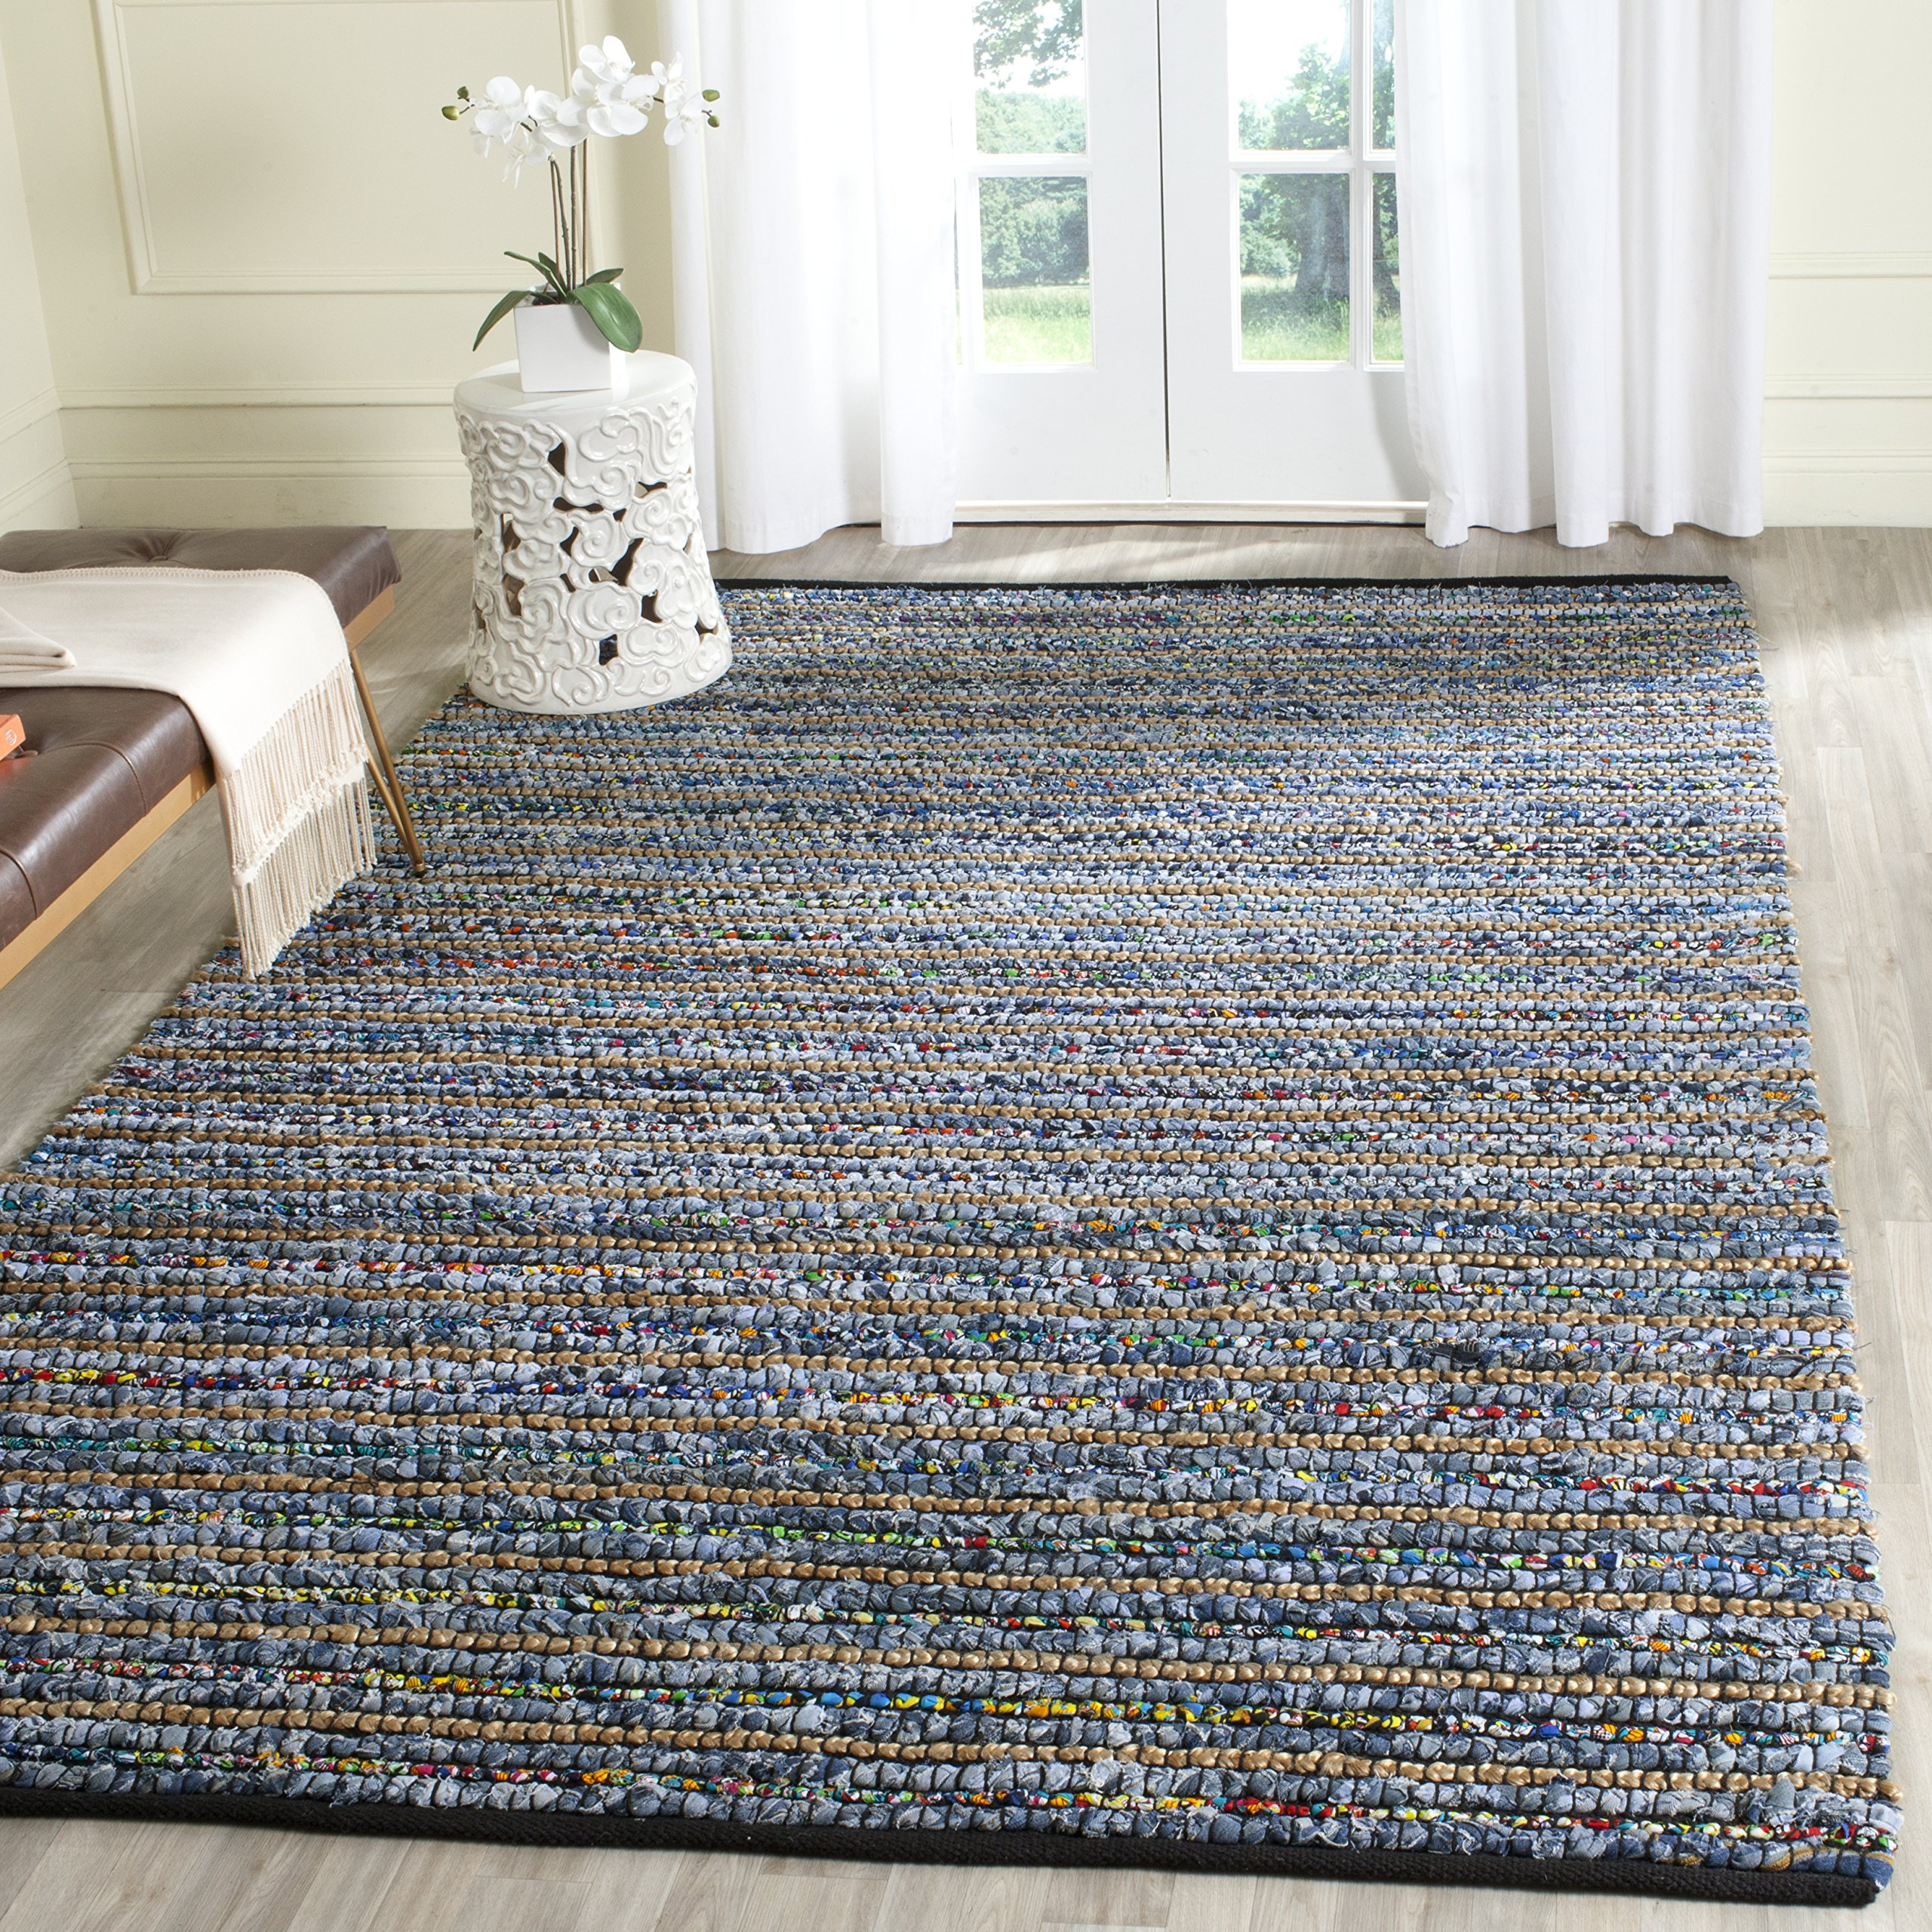 Safavieh Cape Cod Collection CAP364A Hand Woven Multi and Natural Jute and Cotton Area Rug (6' x 9') by Safavieh